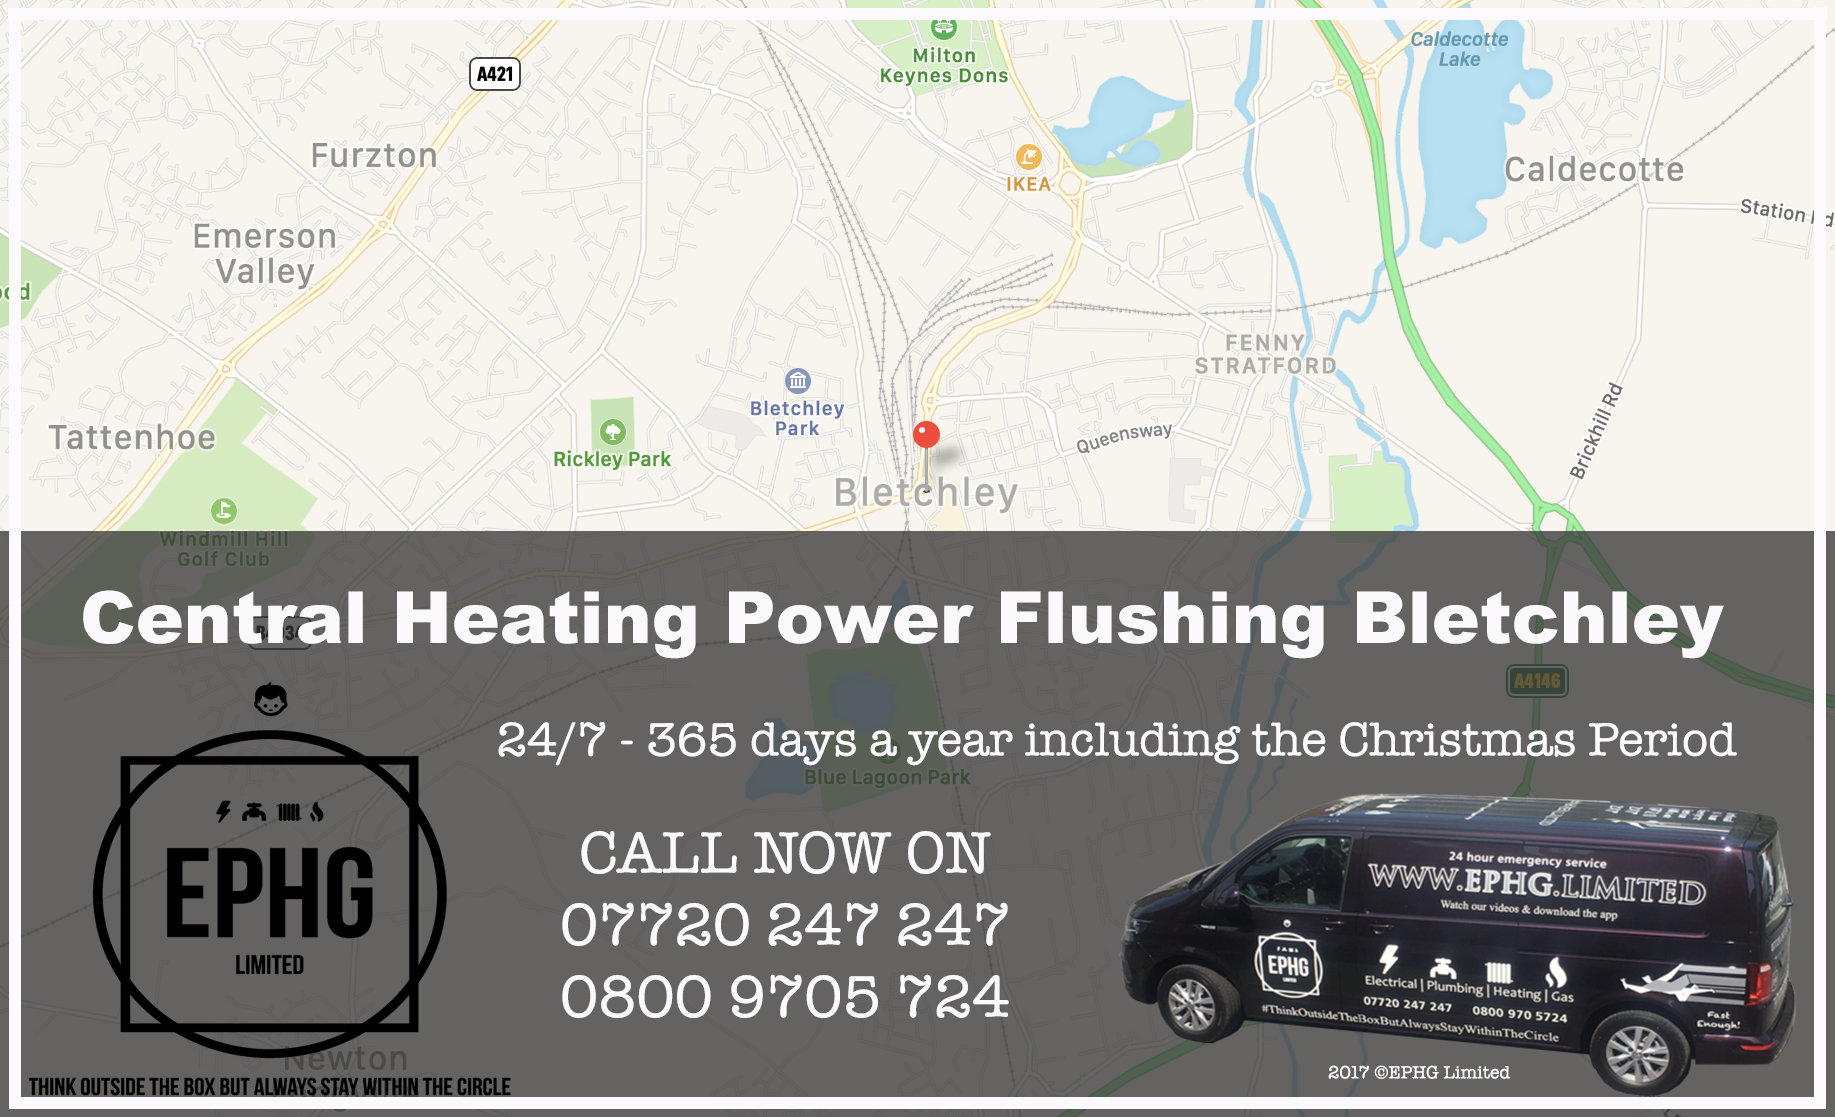 Central Heating Power Flush Bletchley